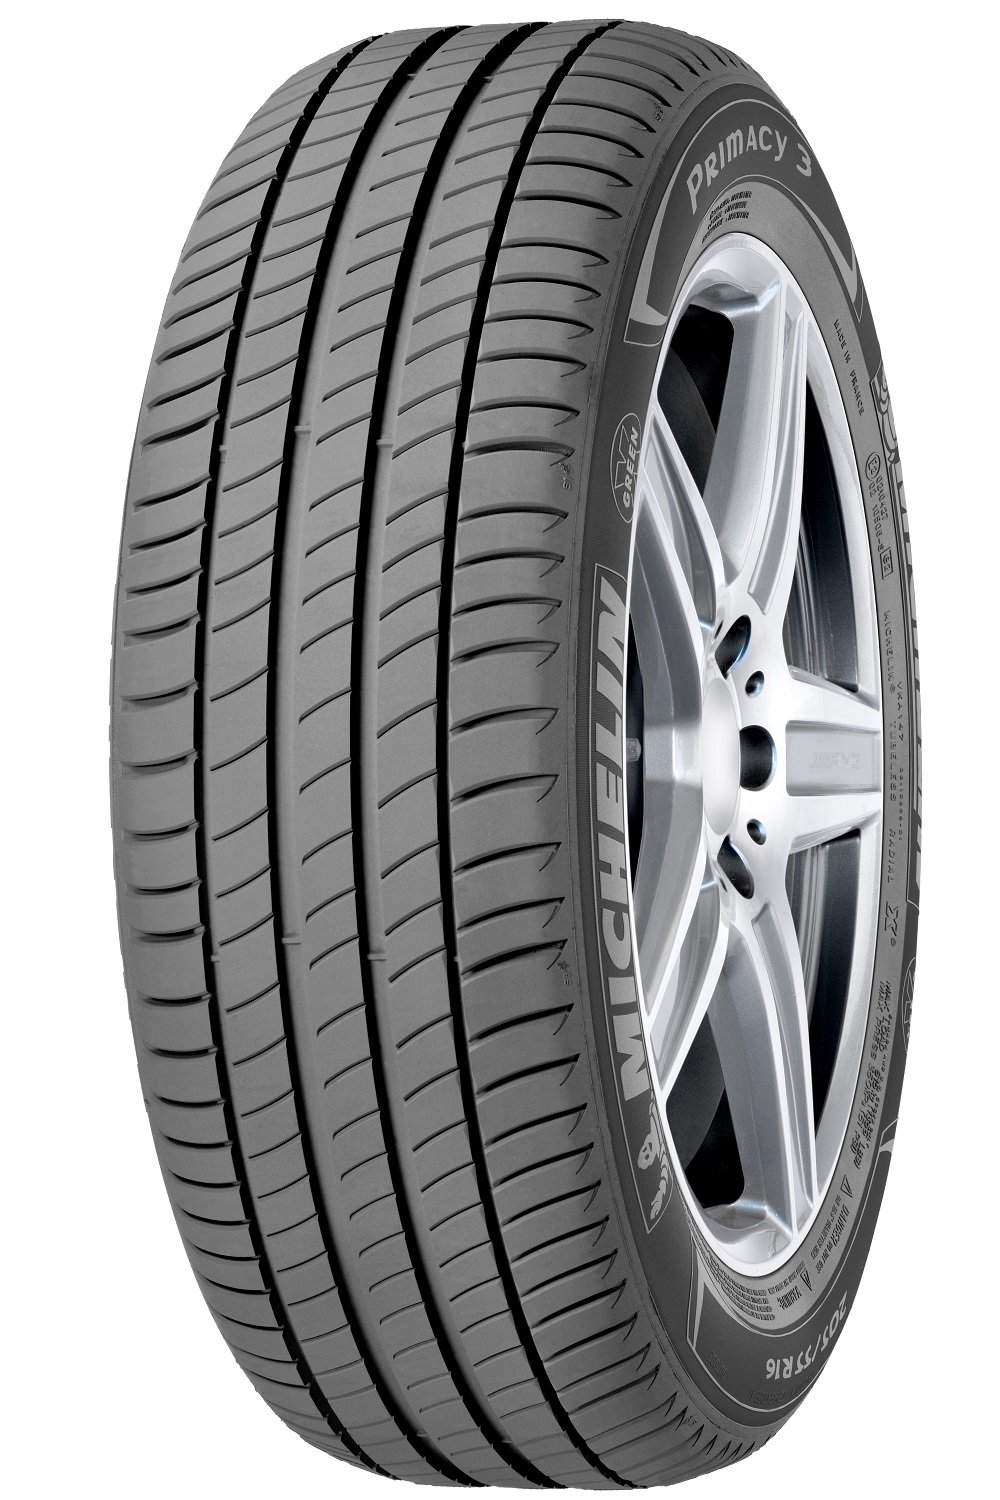 Pneu MICHELIN PRIMACY 3 235/45R18 98 W